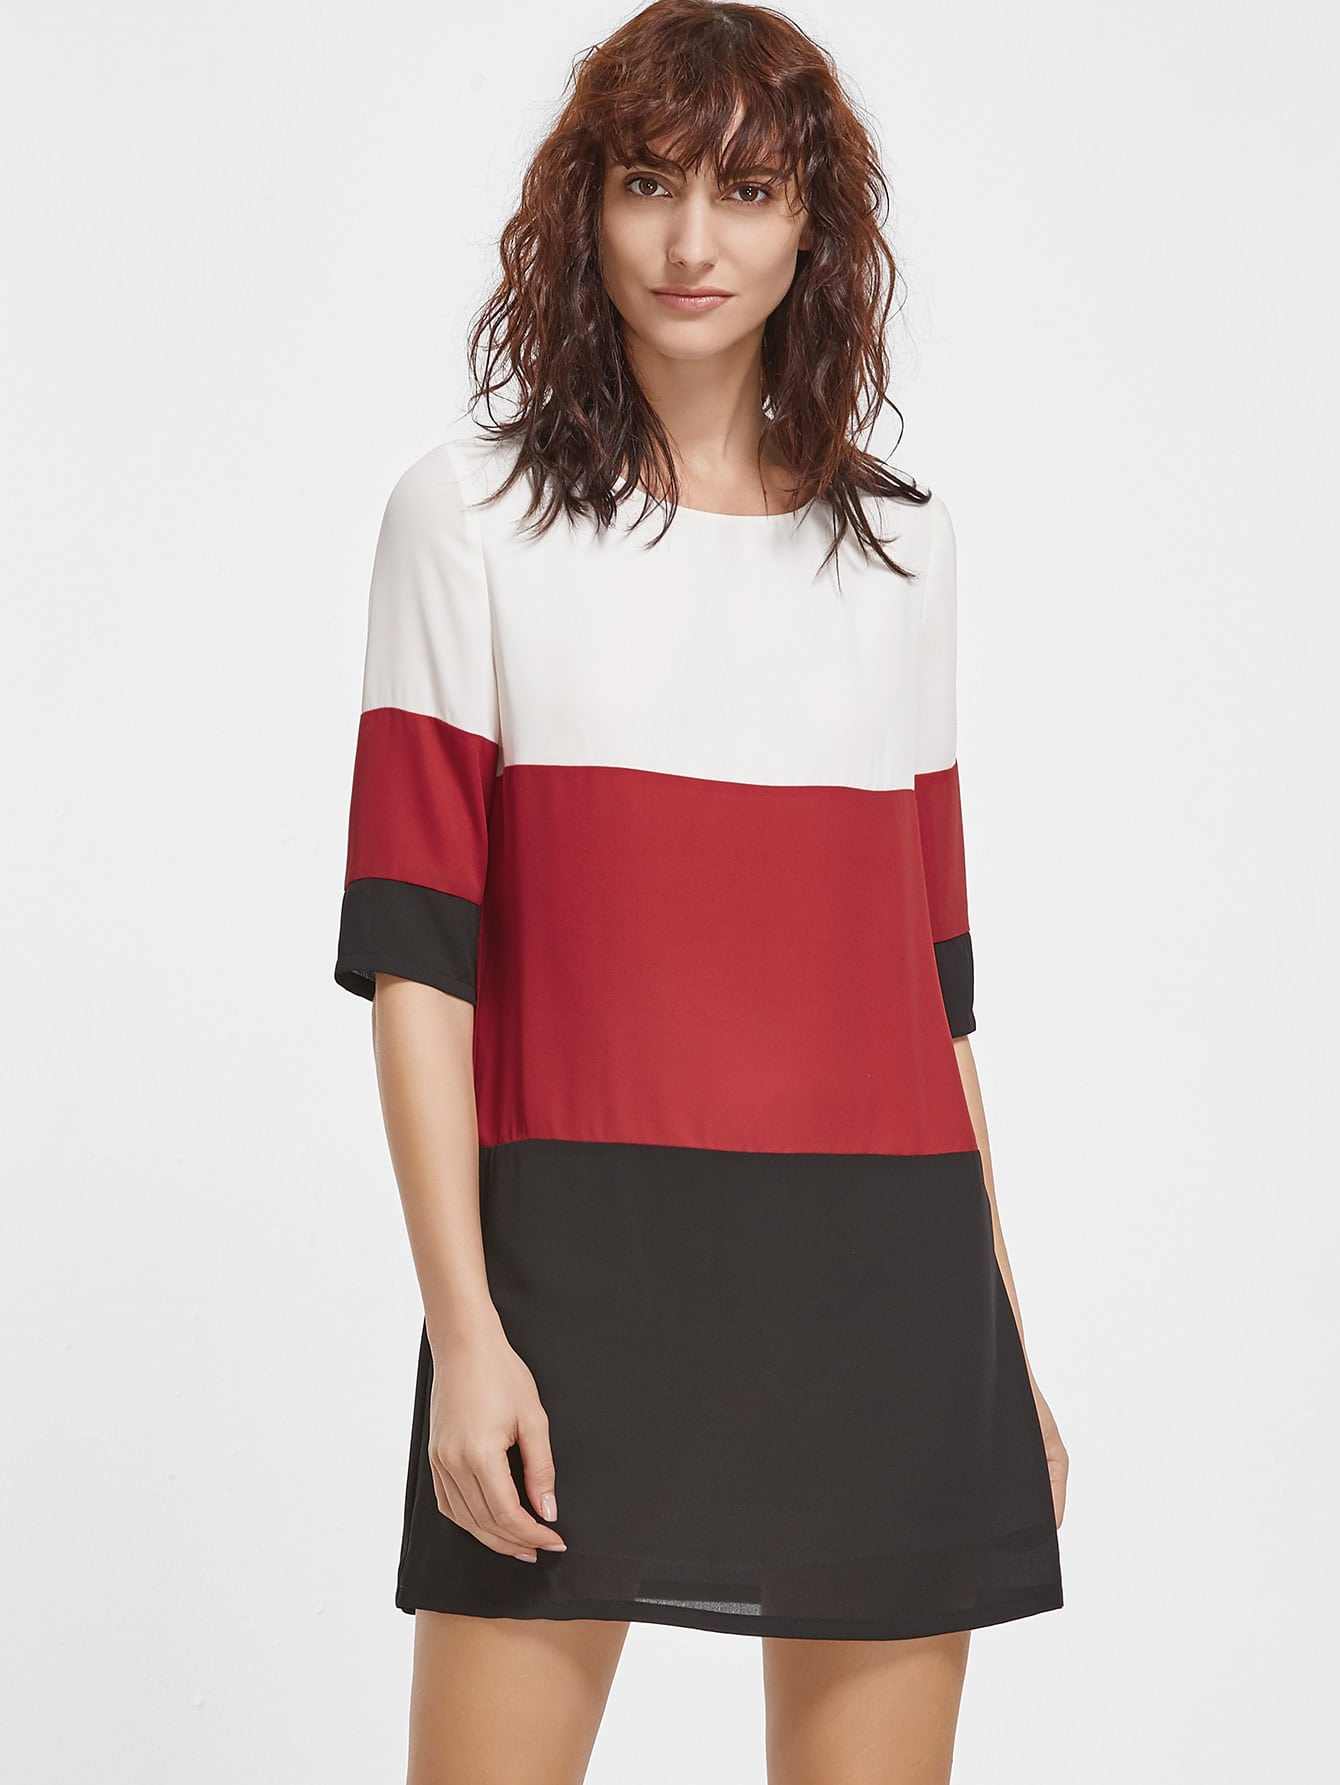 Color Block Half Sleeve Tunic Dress dress161202704